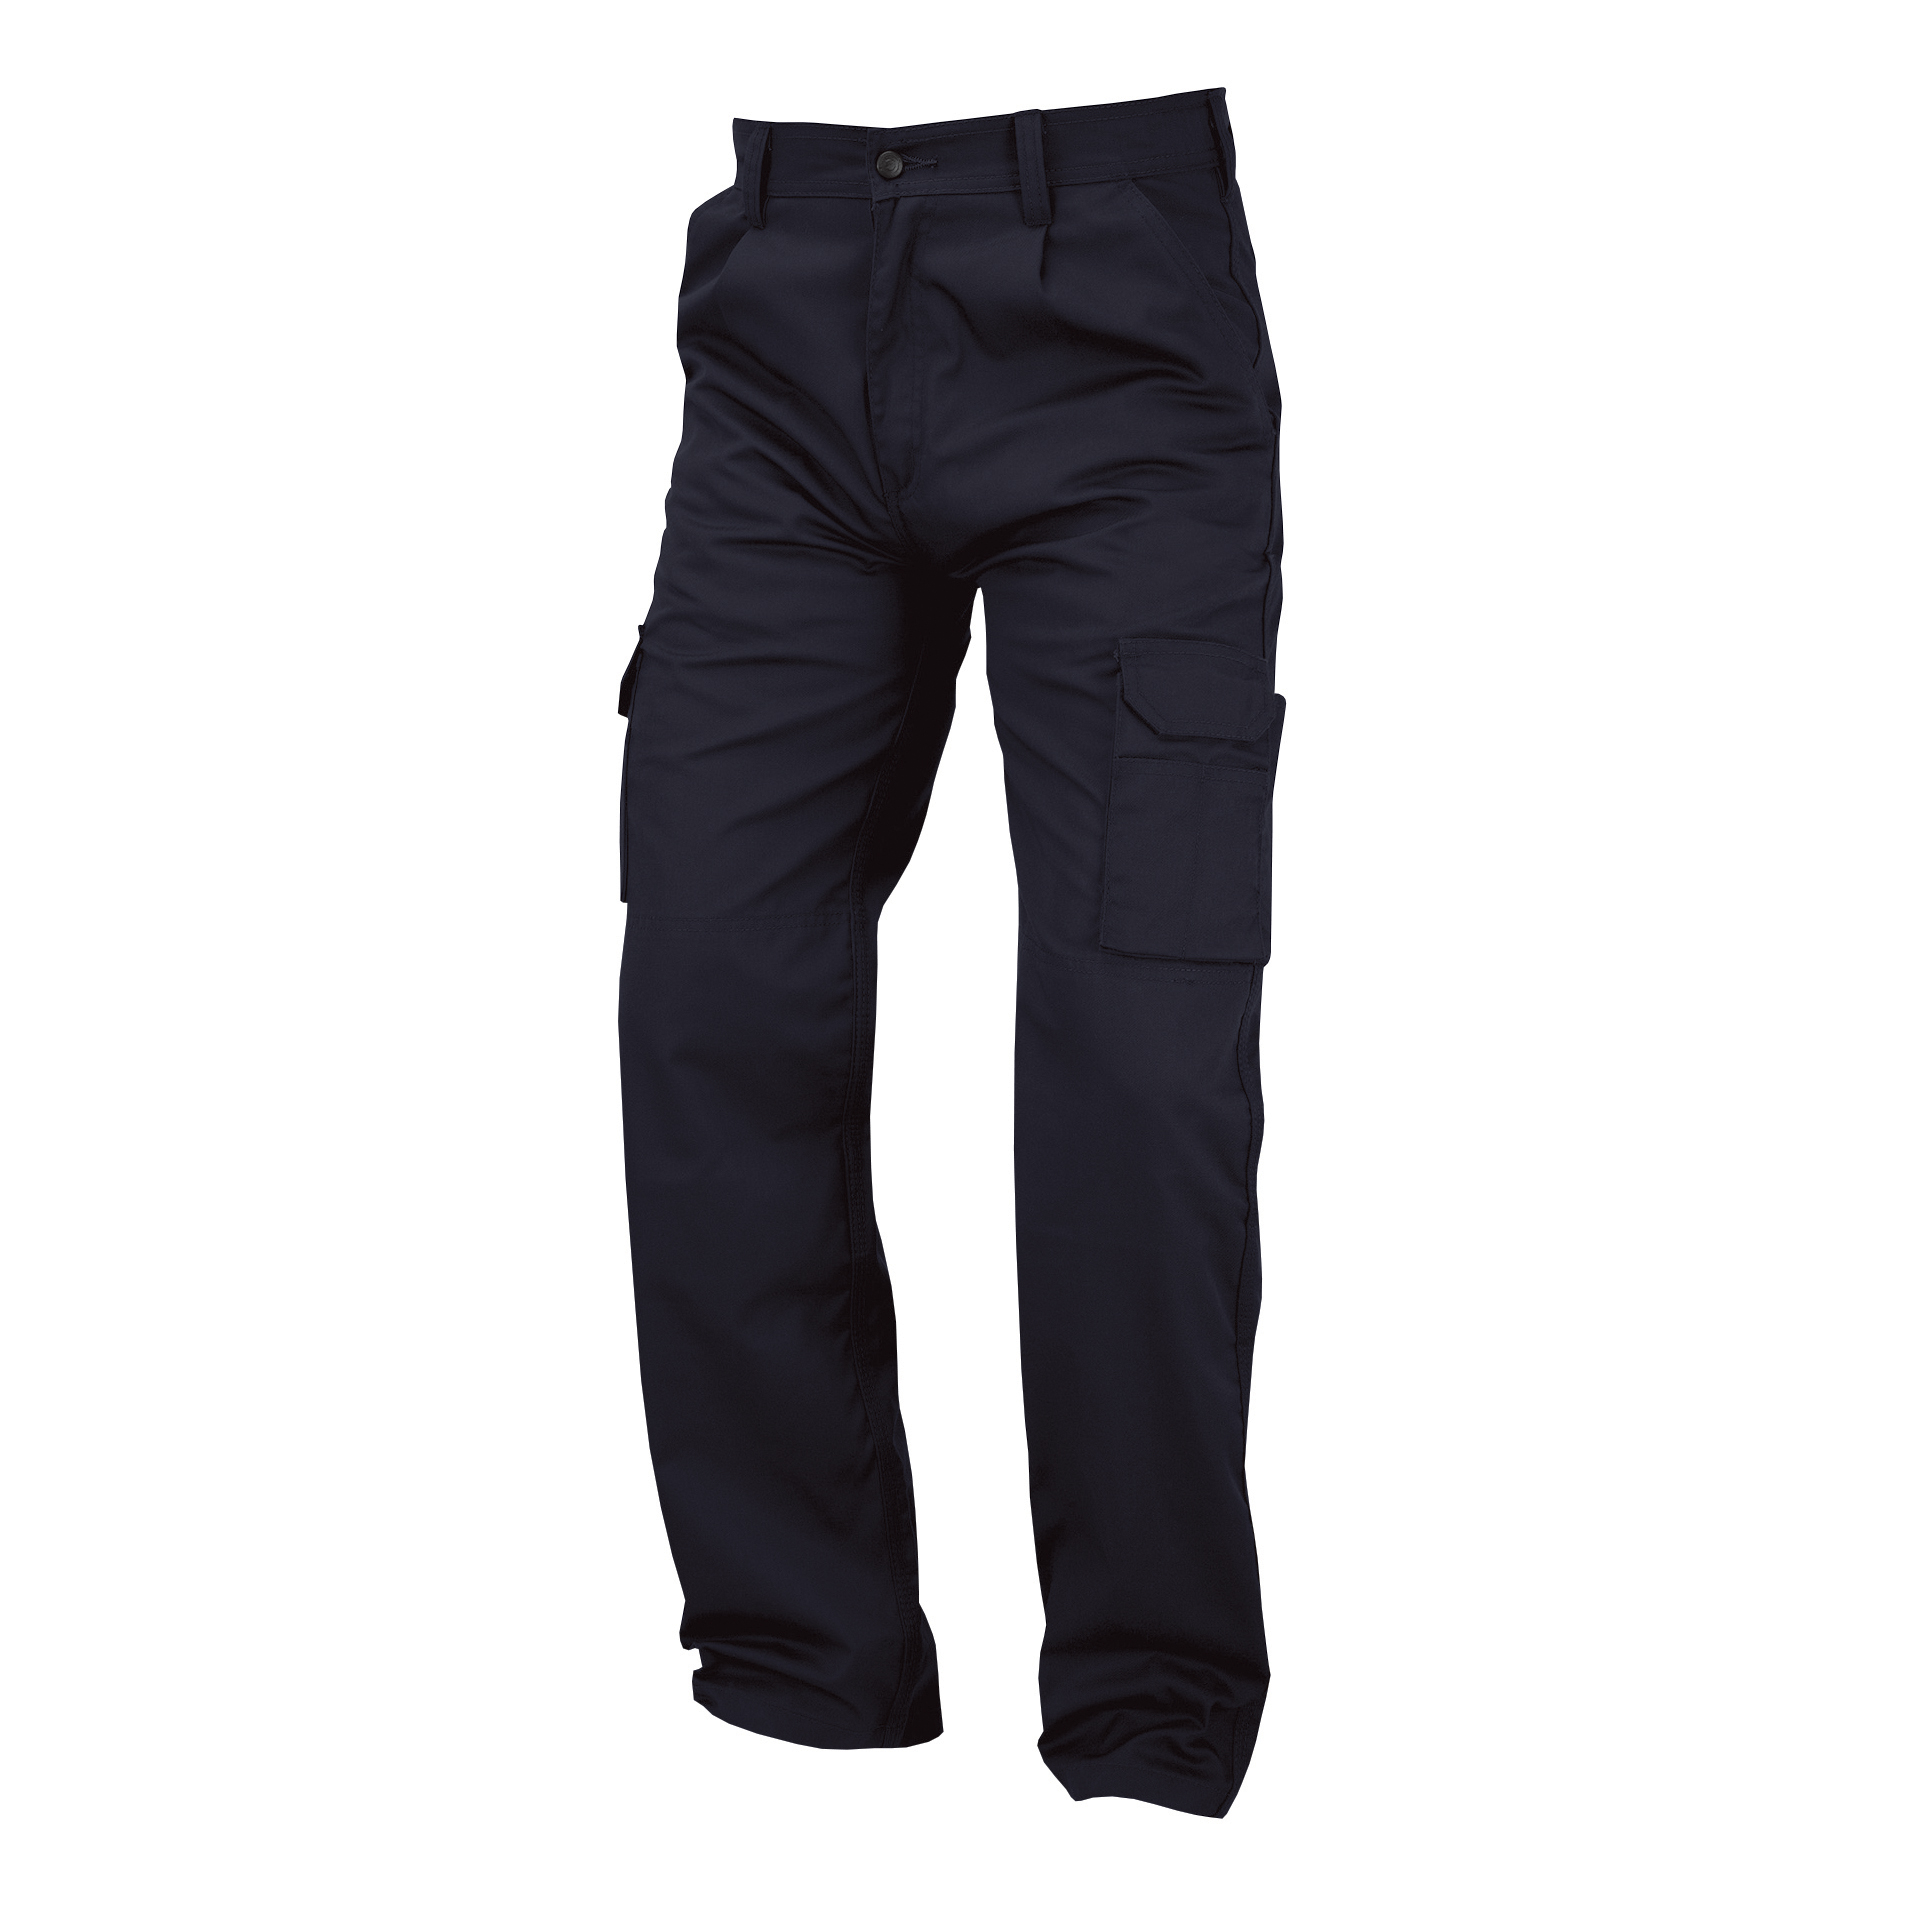 Supertouch Combat Trousers Polycotton with Pockets Tall Navy 36inch Ref 18KN5 *Approx 3 Day Leadtime*